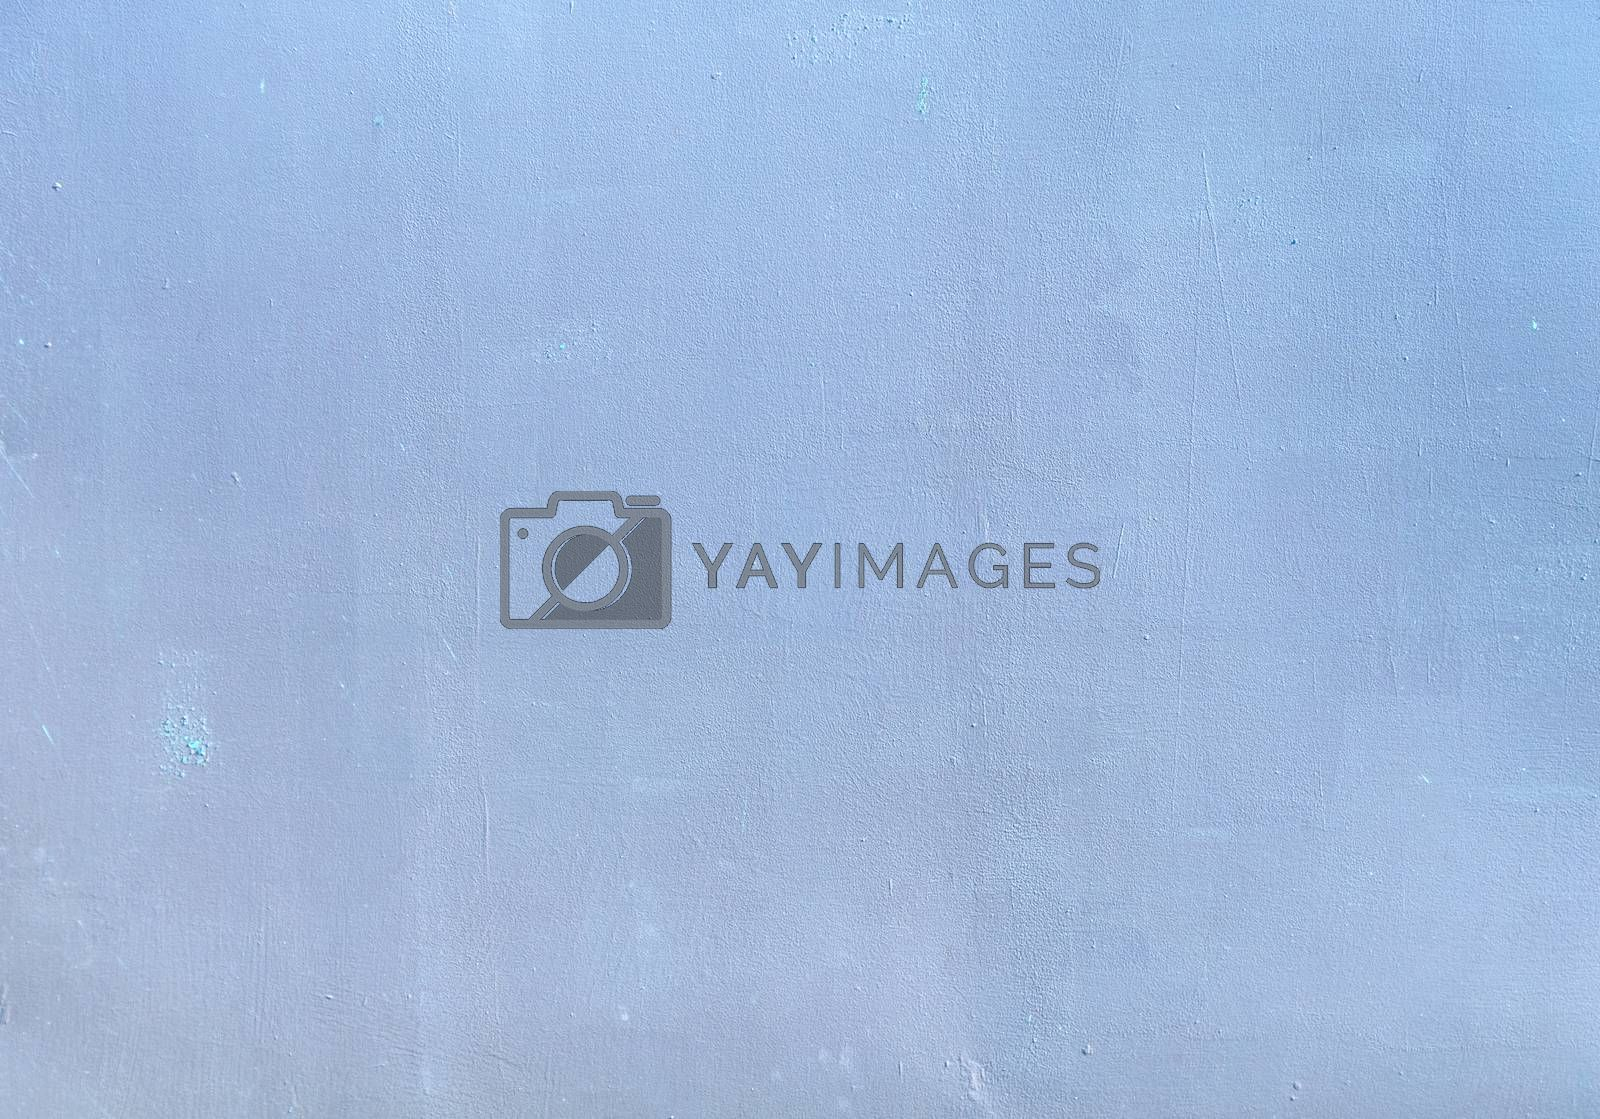 Royalty free image of blue background by meinzahn